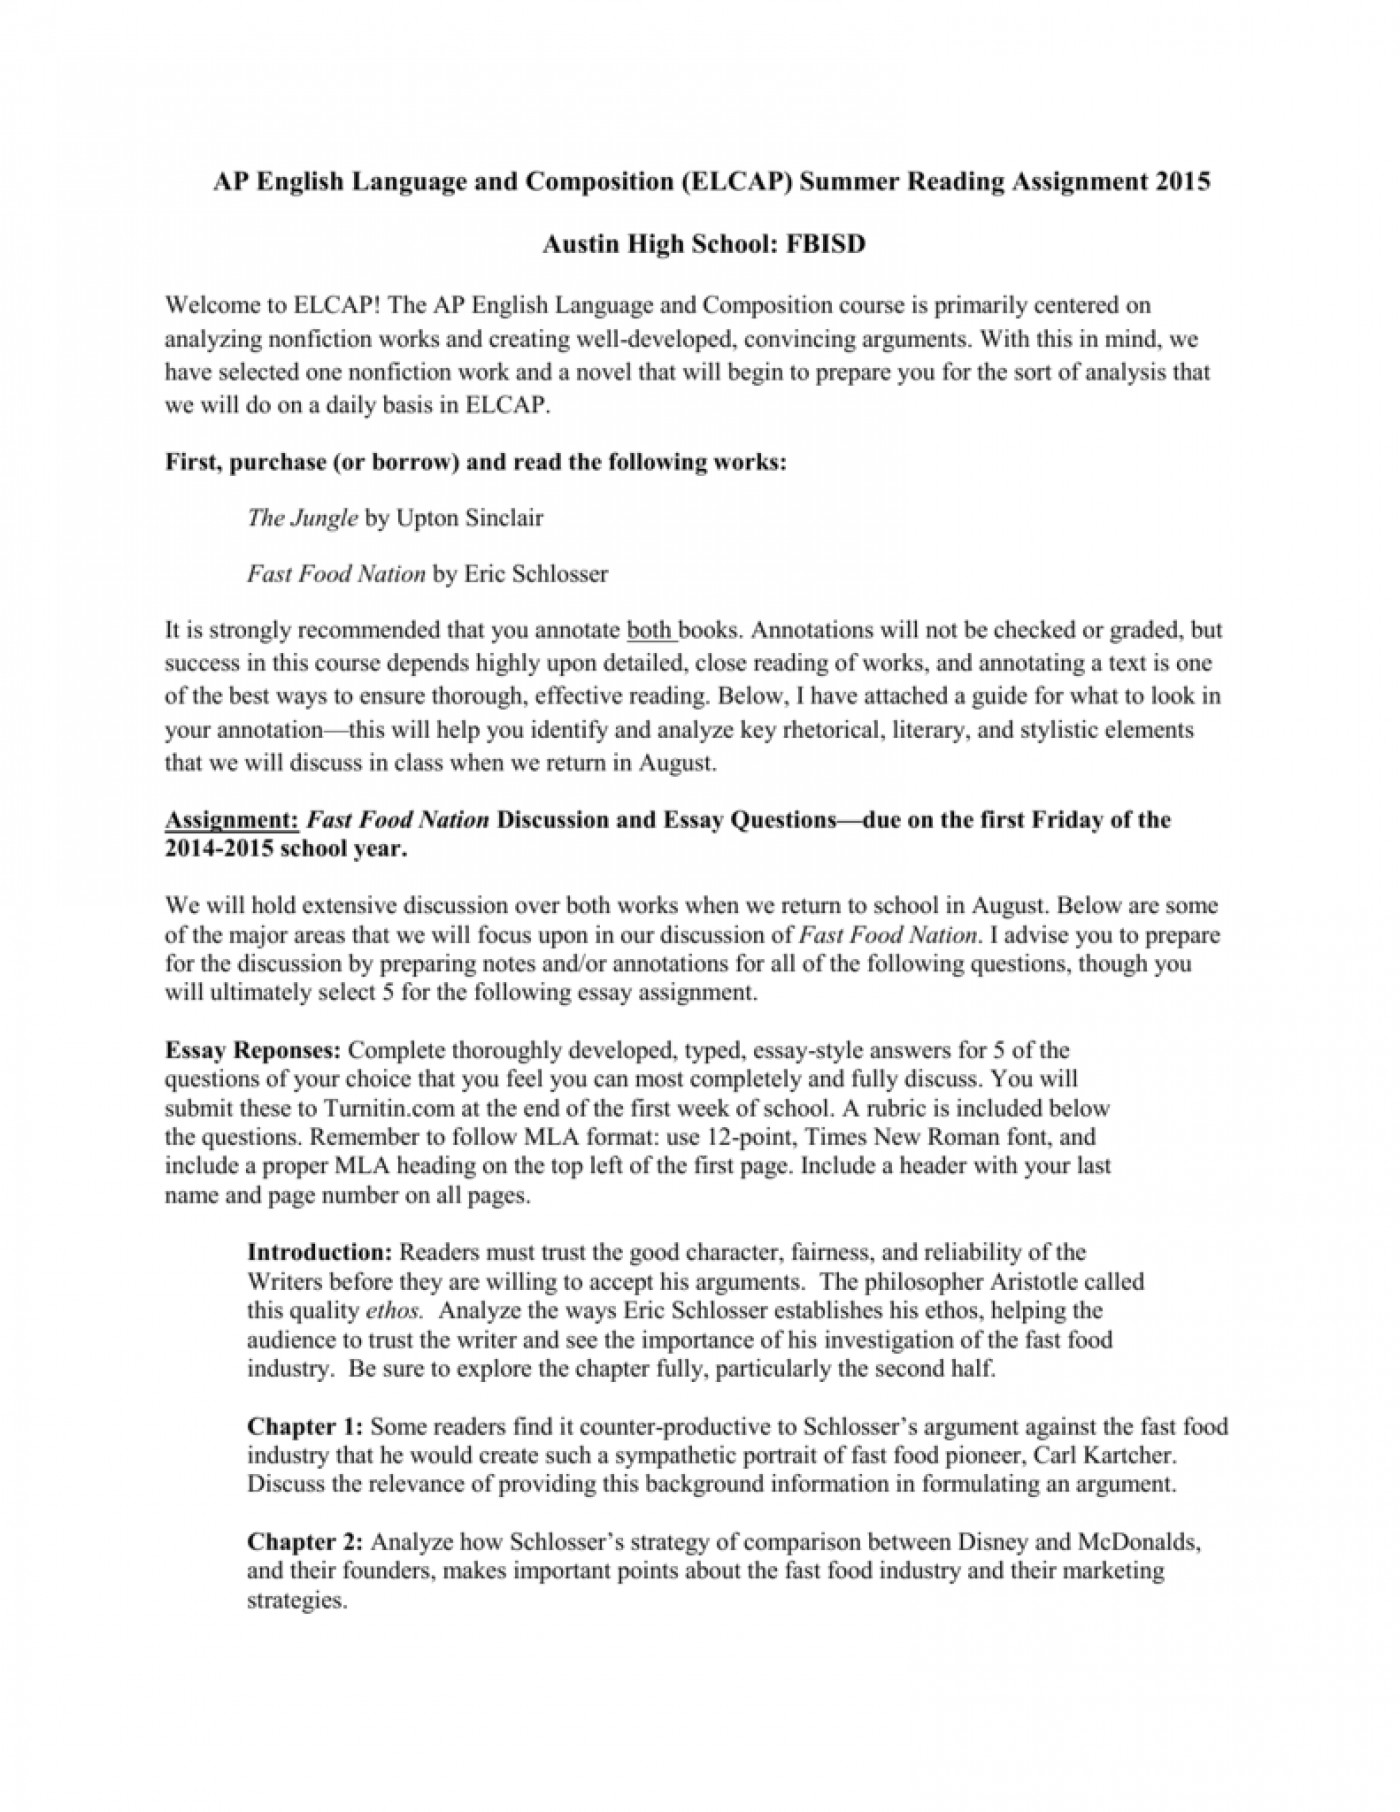 008 Essay Example 008036586 1 Fast Stunning Food Nation Outline Titles Introduction 1400